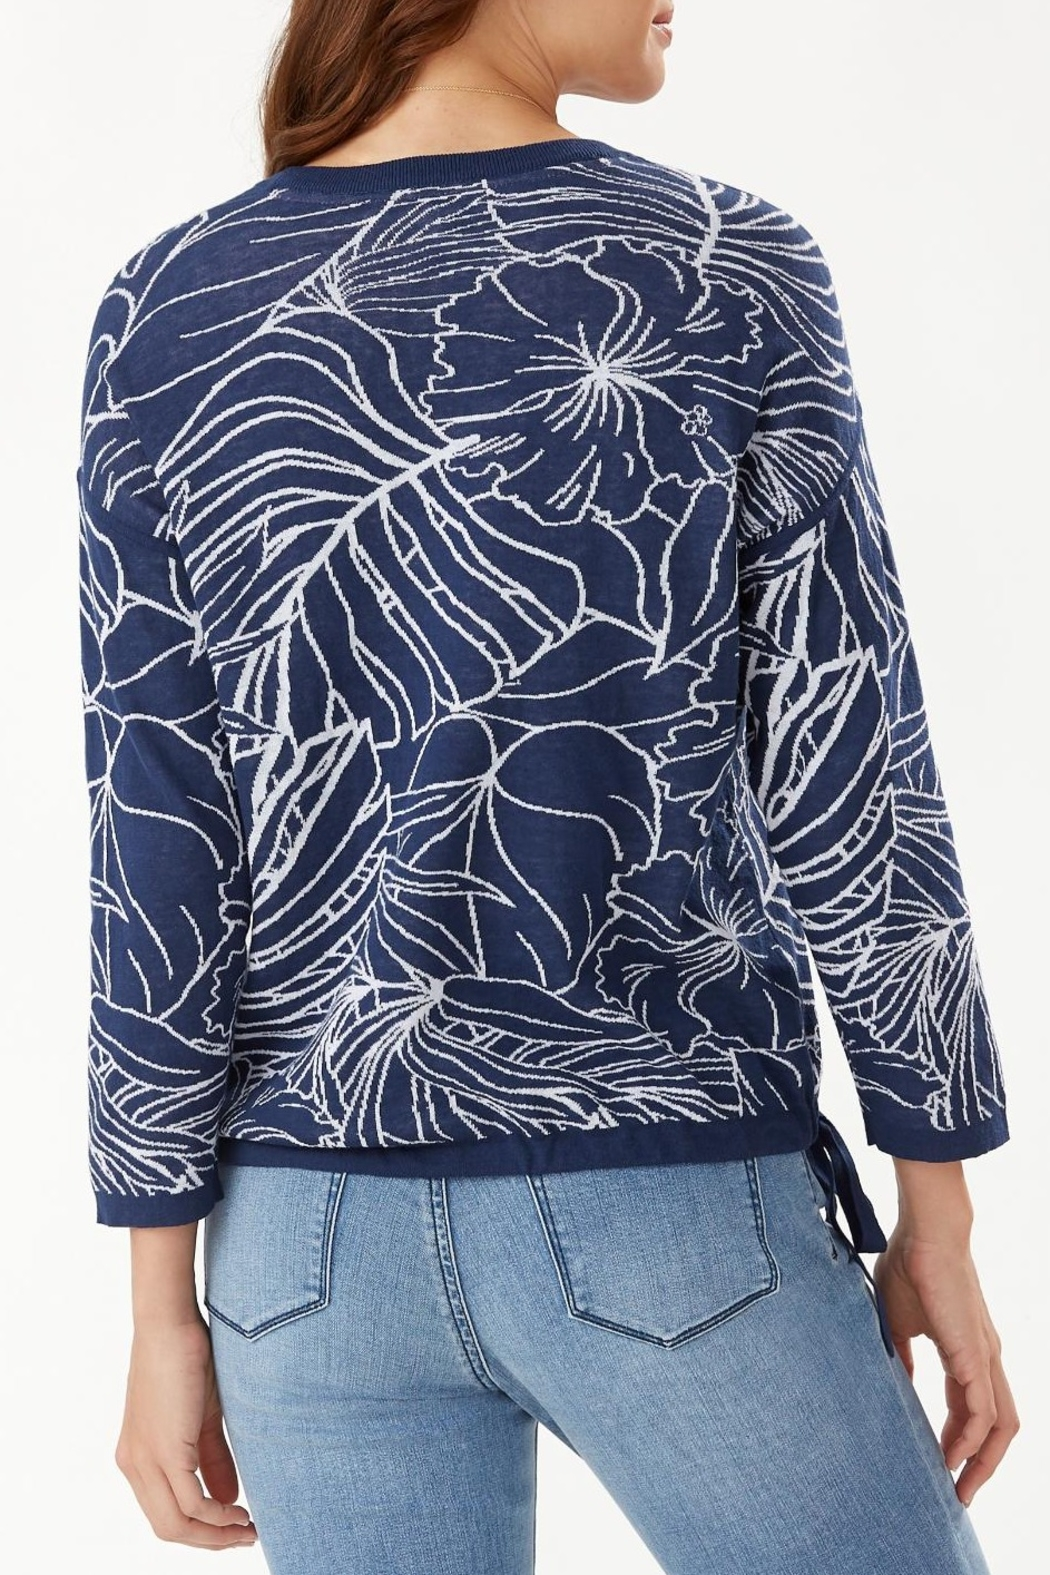 Tommy Bahama Island Bloom Jacquard Tie Sweater - Front Full Image